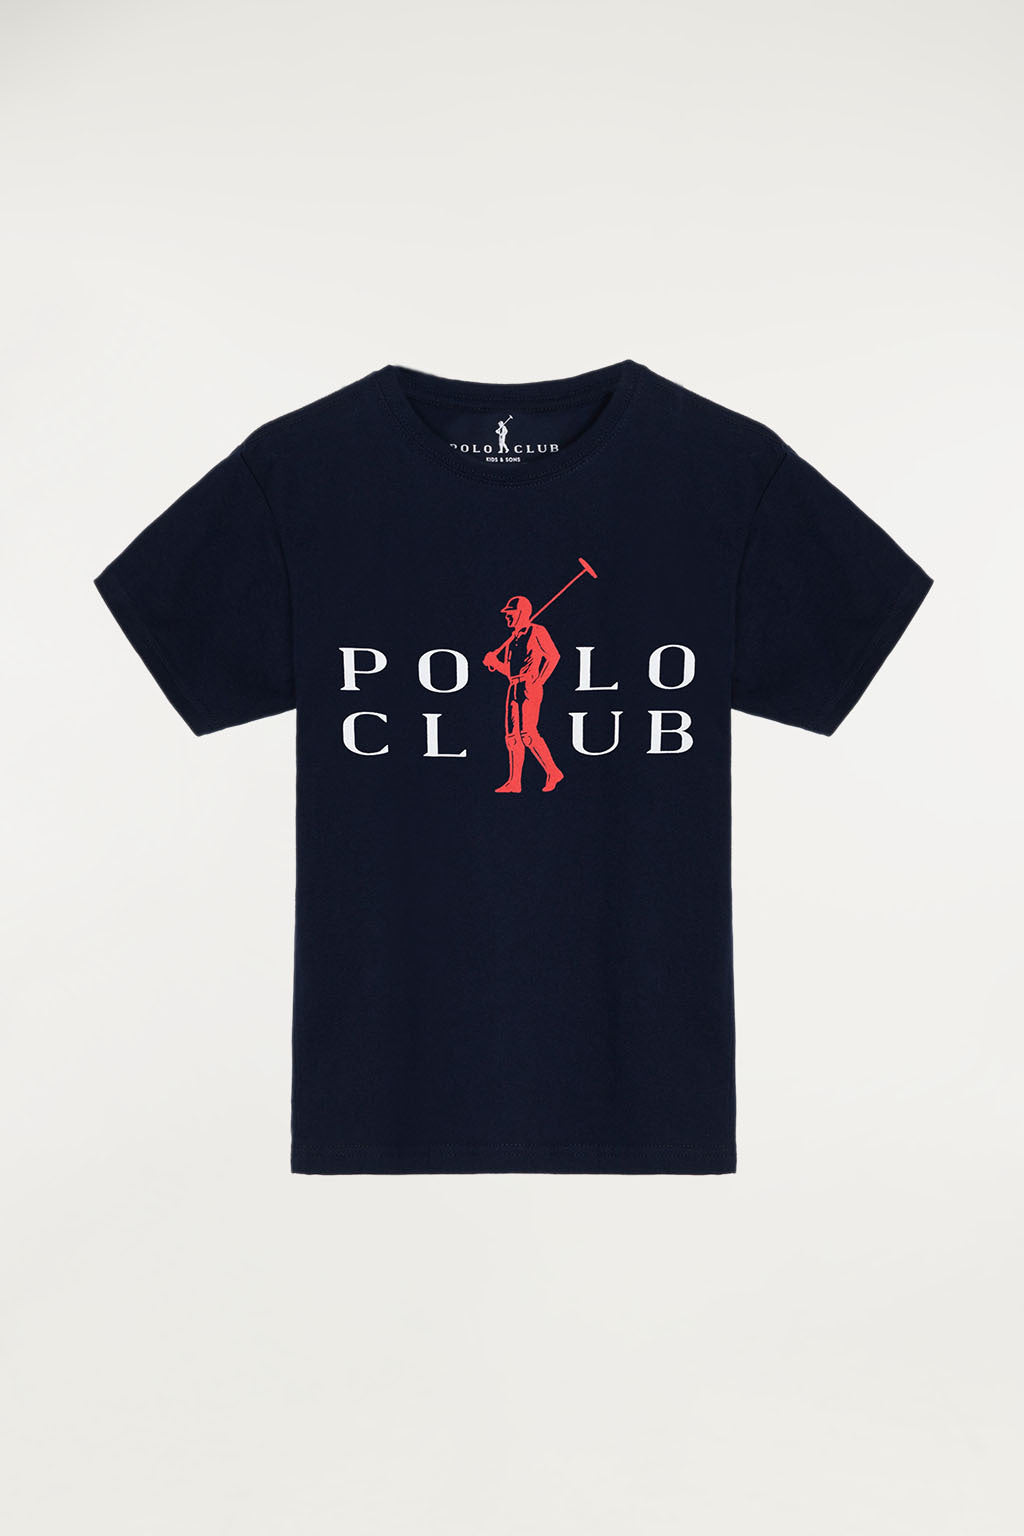 Navy blue T-shirt with bi-coloured print